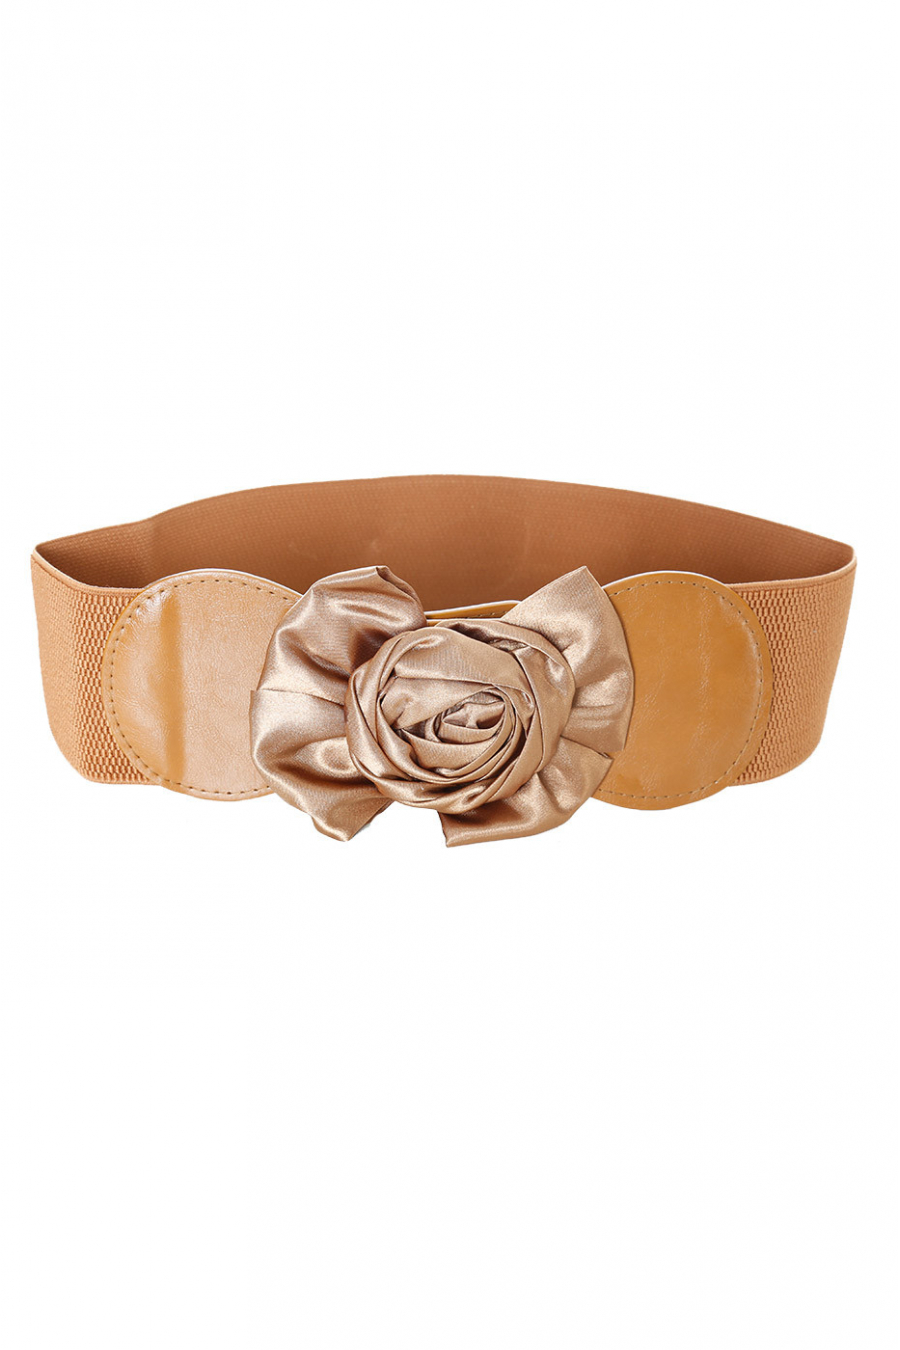 Elastic camel belt with large bow buckle. SG-0476